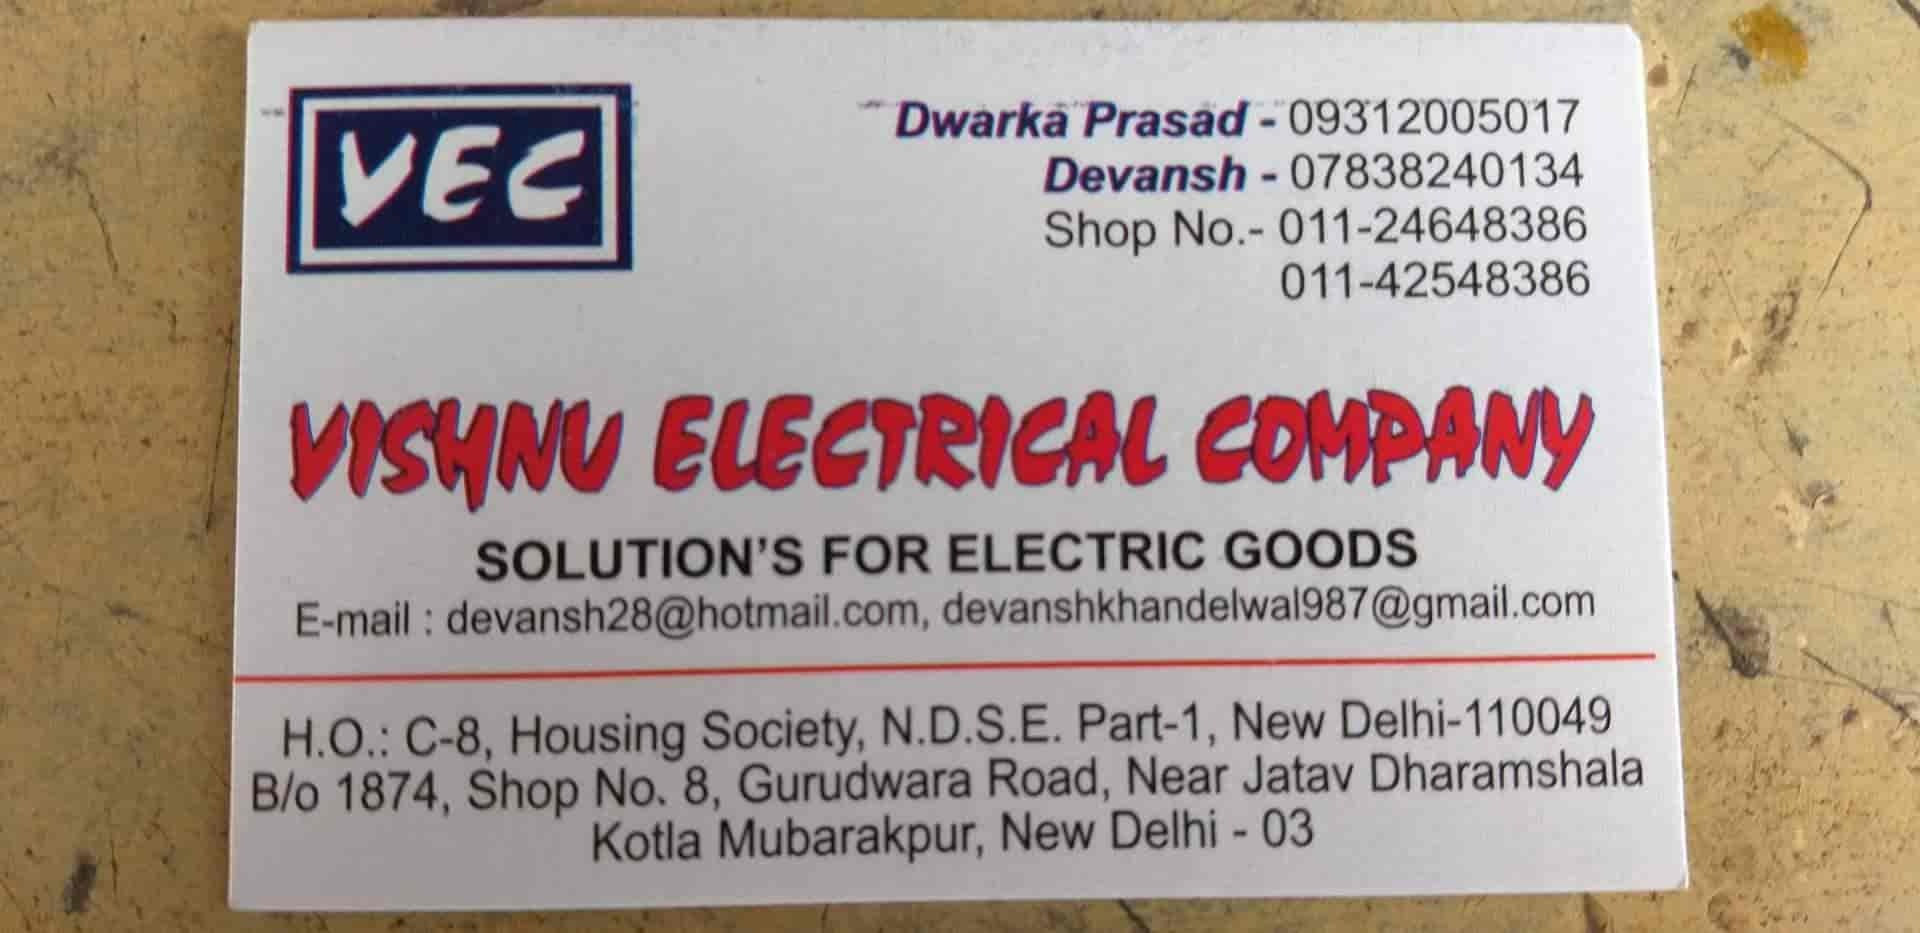 Vishnu Electrical Company Photos, Kotla Mubarakpur, Delhi